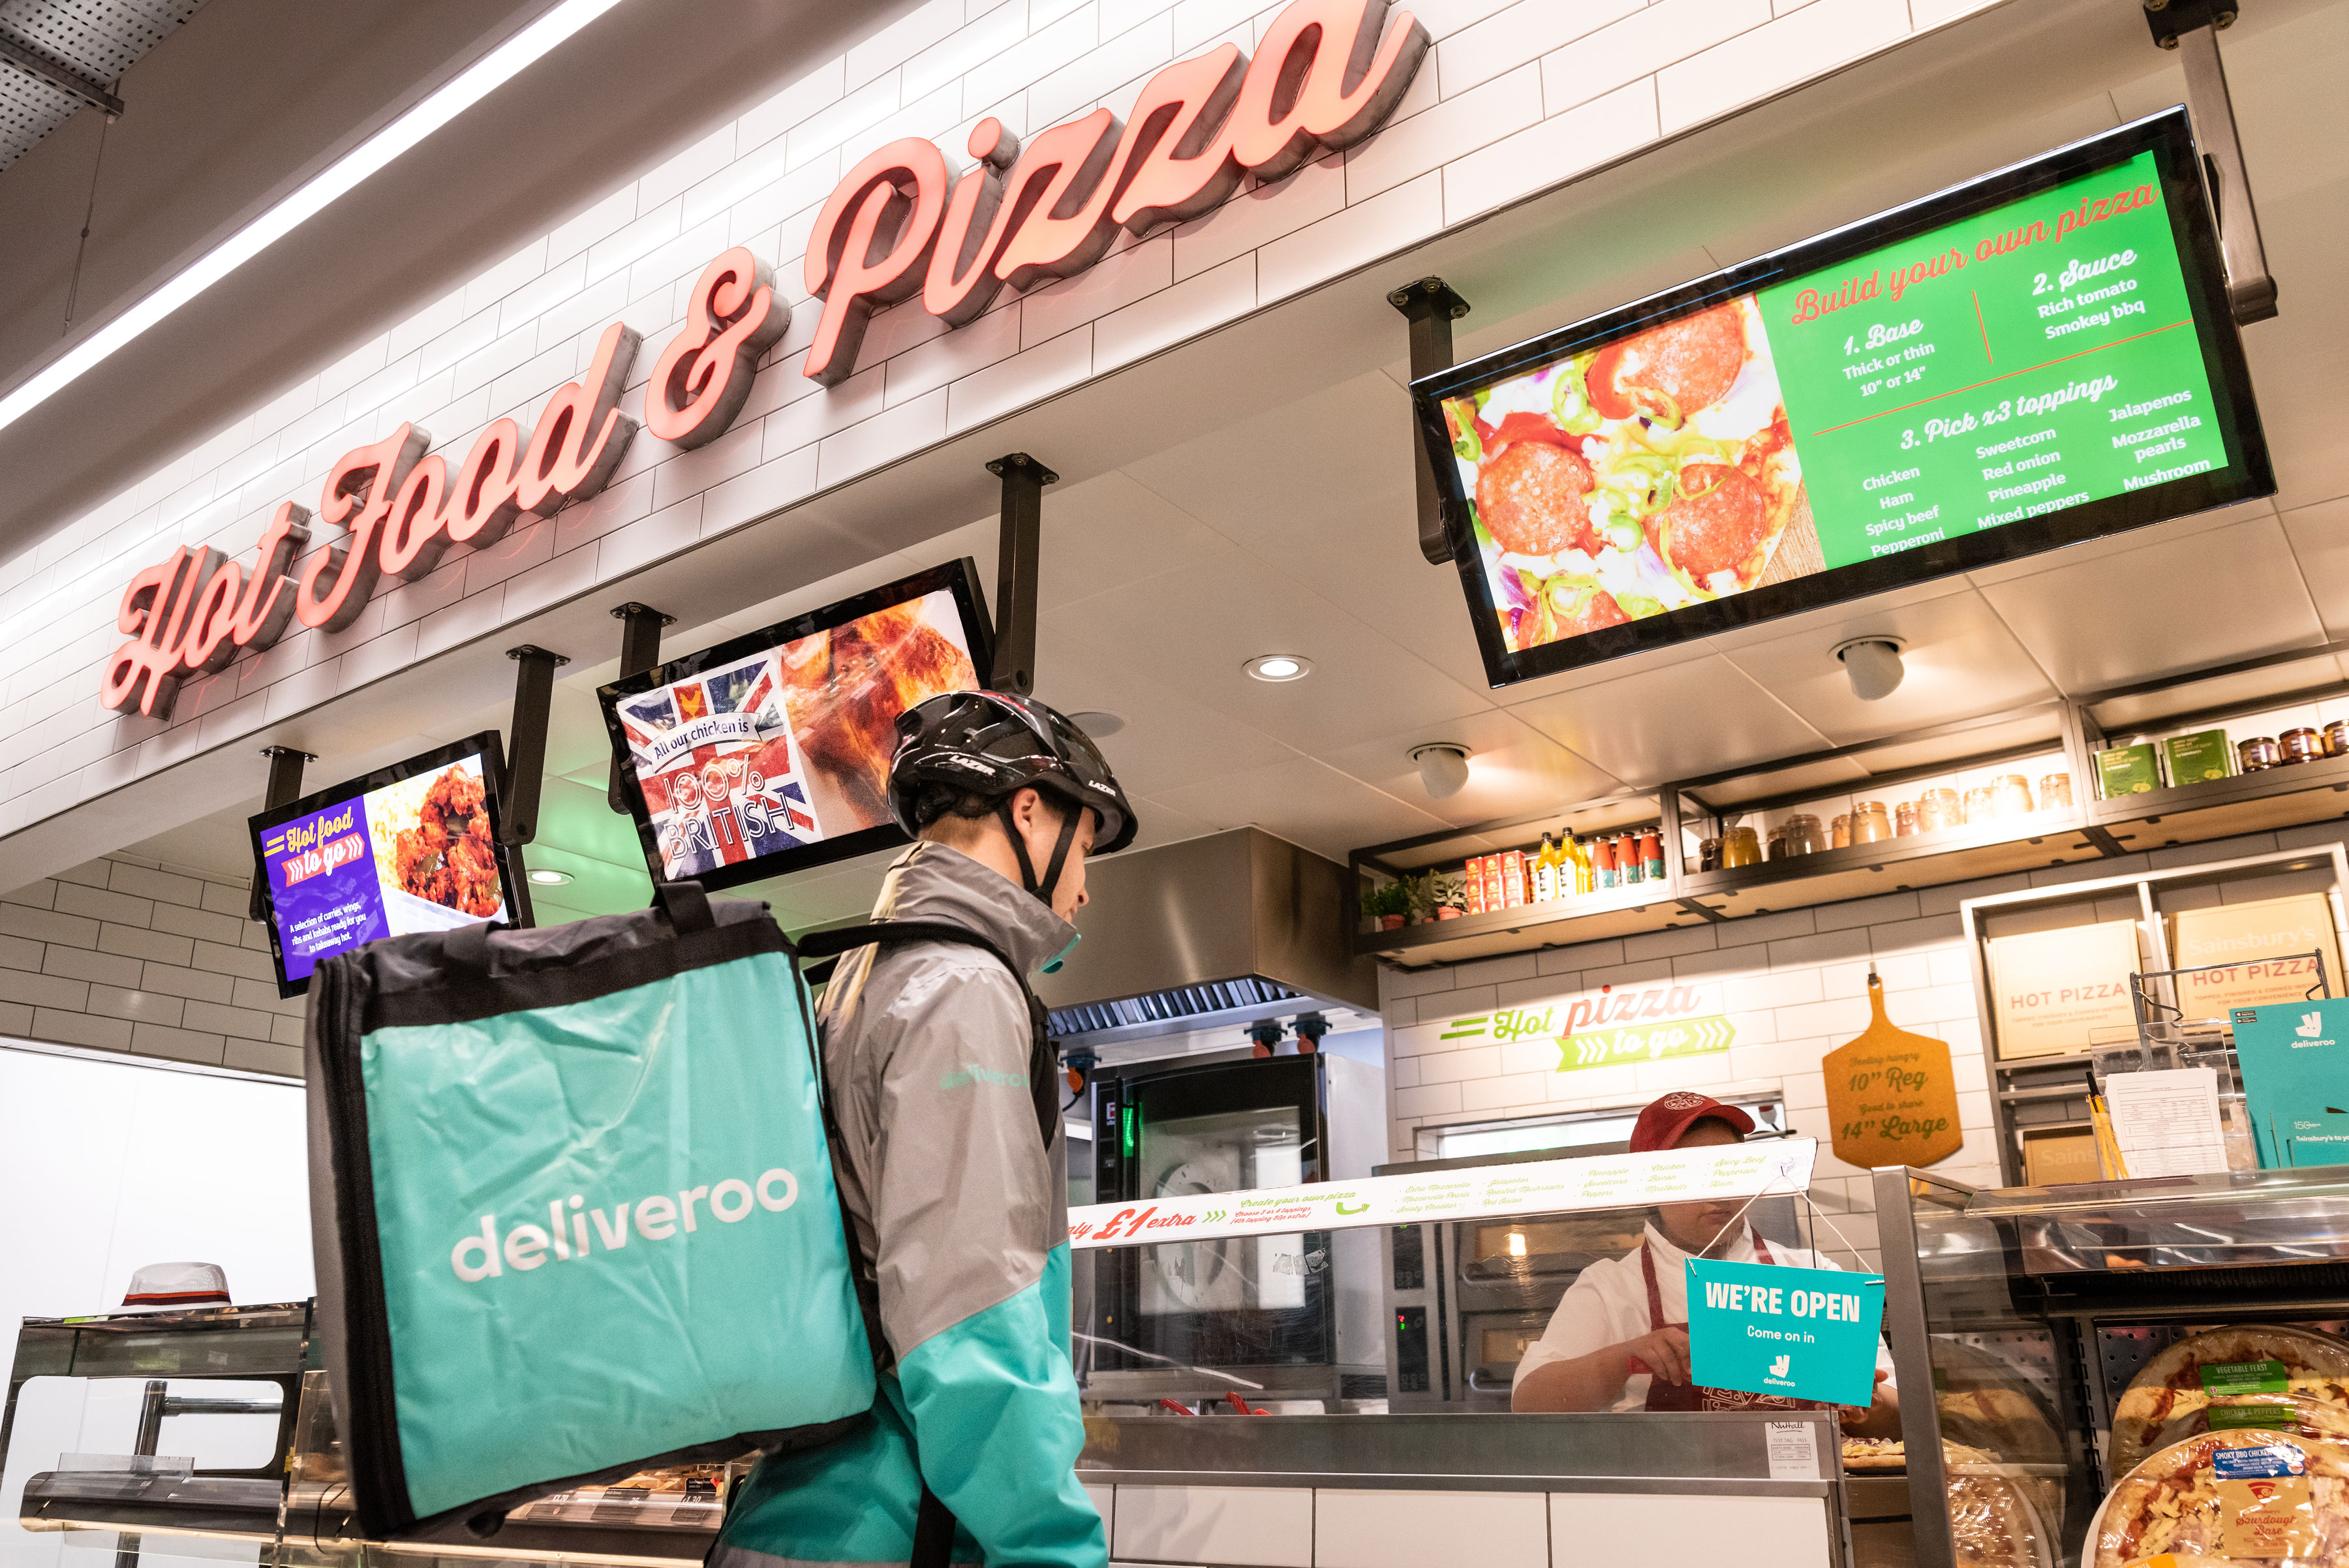 Sainsbury's partners with Deliveroo on pizza takeaway service